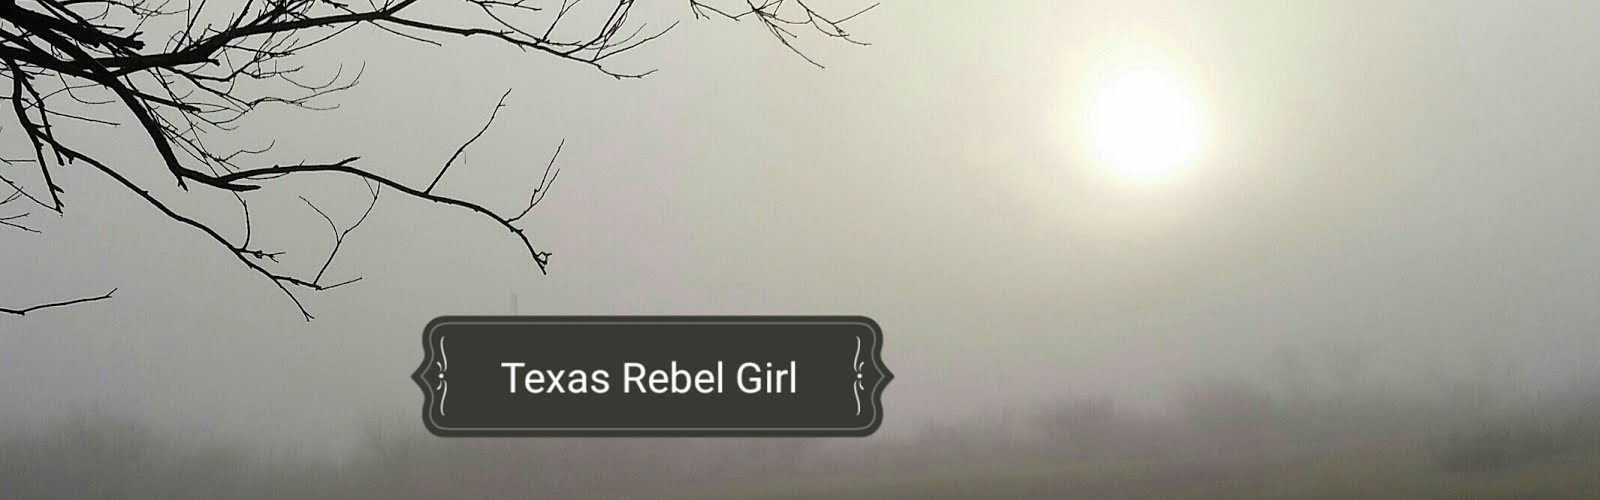 Texas Rebel Girl